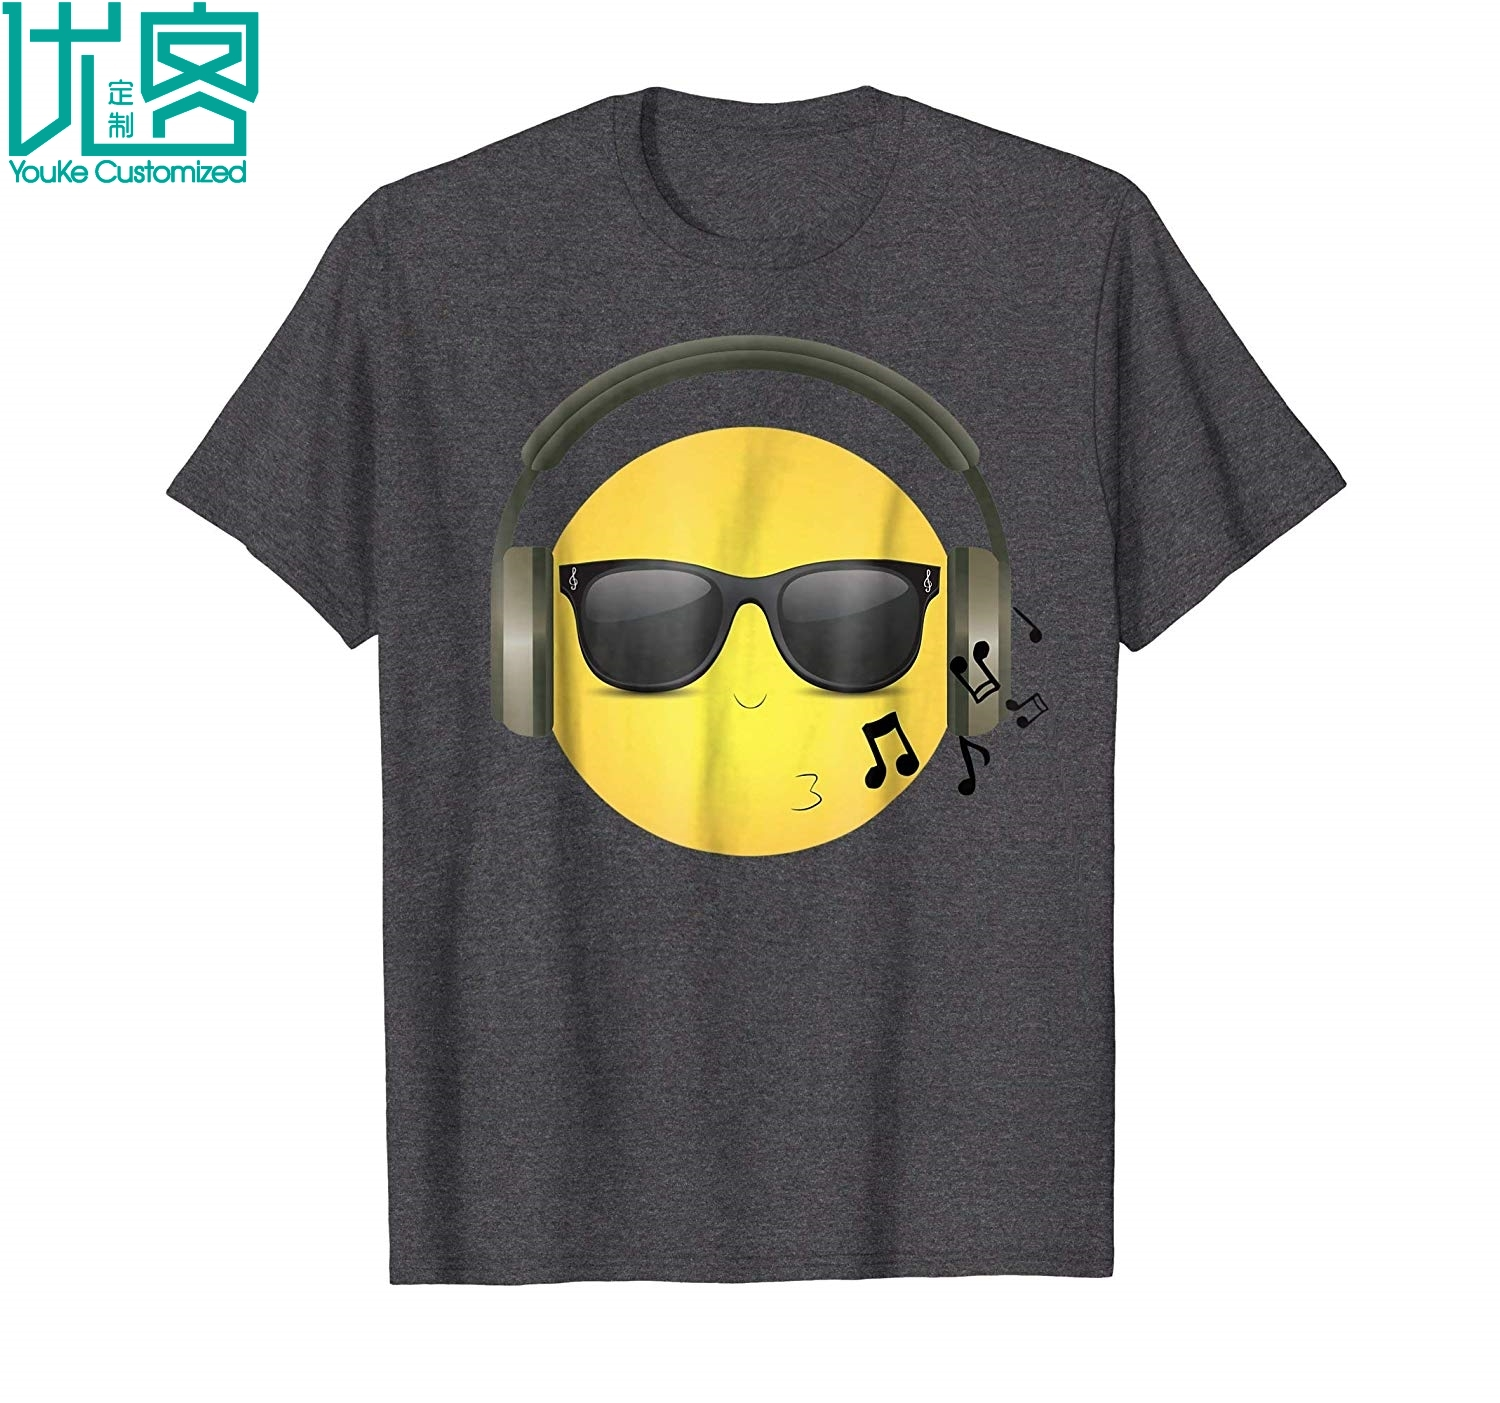 Whistling Cool Emoji With Music Headphones Shades 2019 Summer Men's Short Sleeve T-Shirt